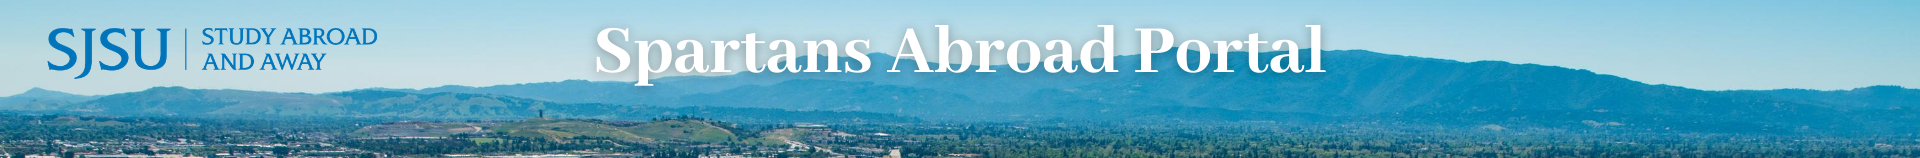 Study Abroad and Away - San Jose State University